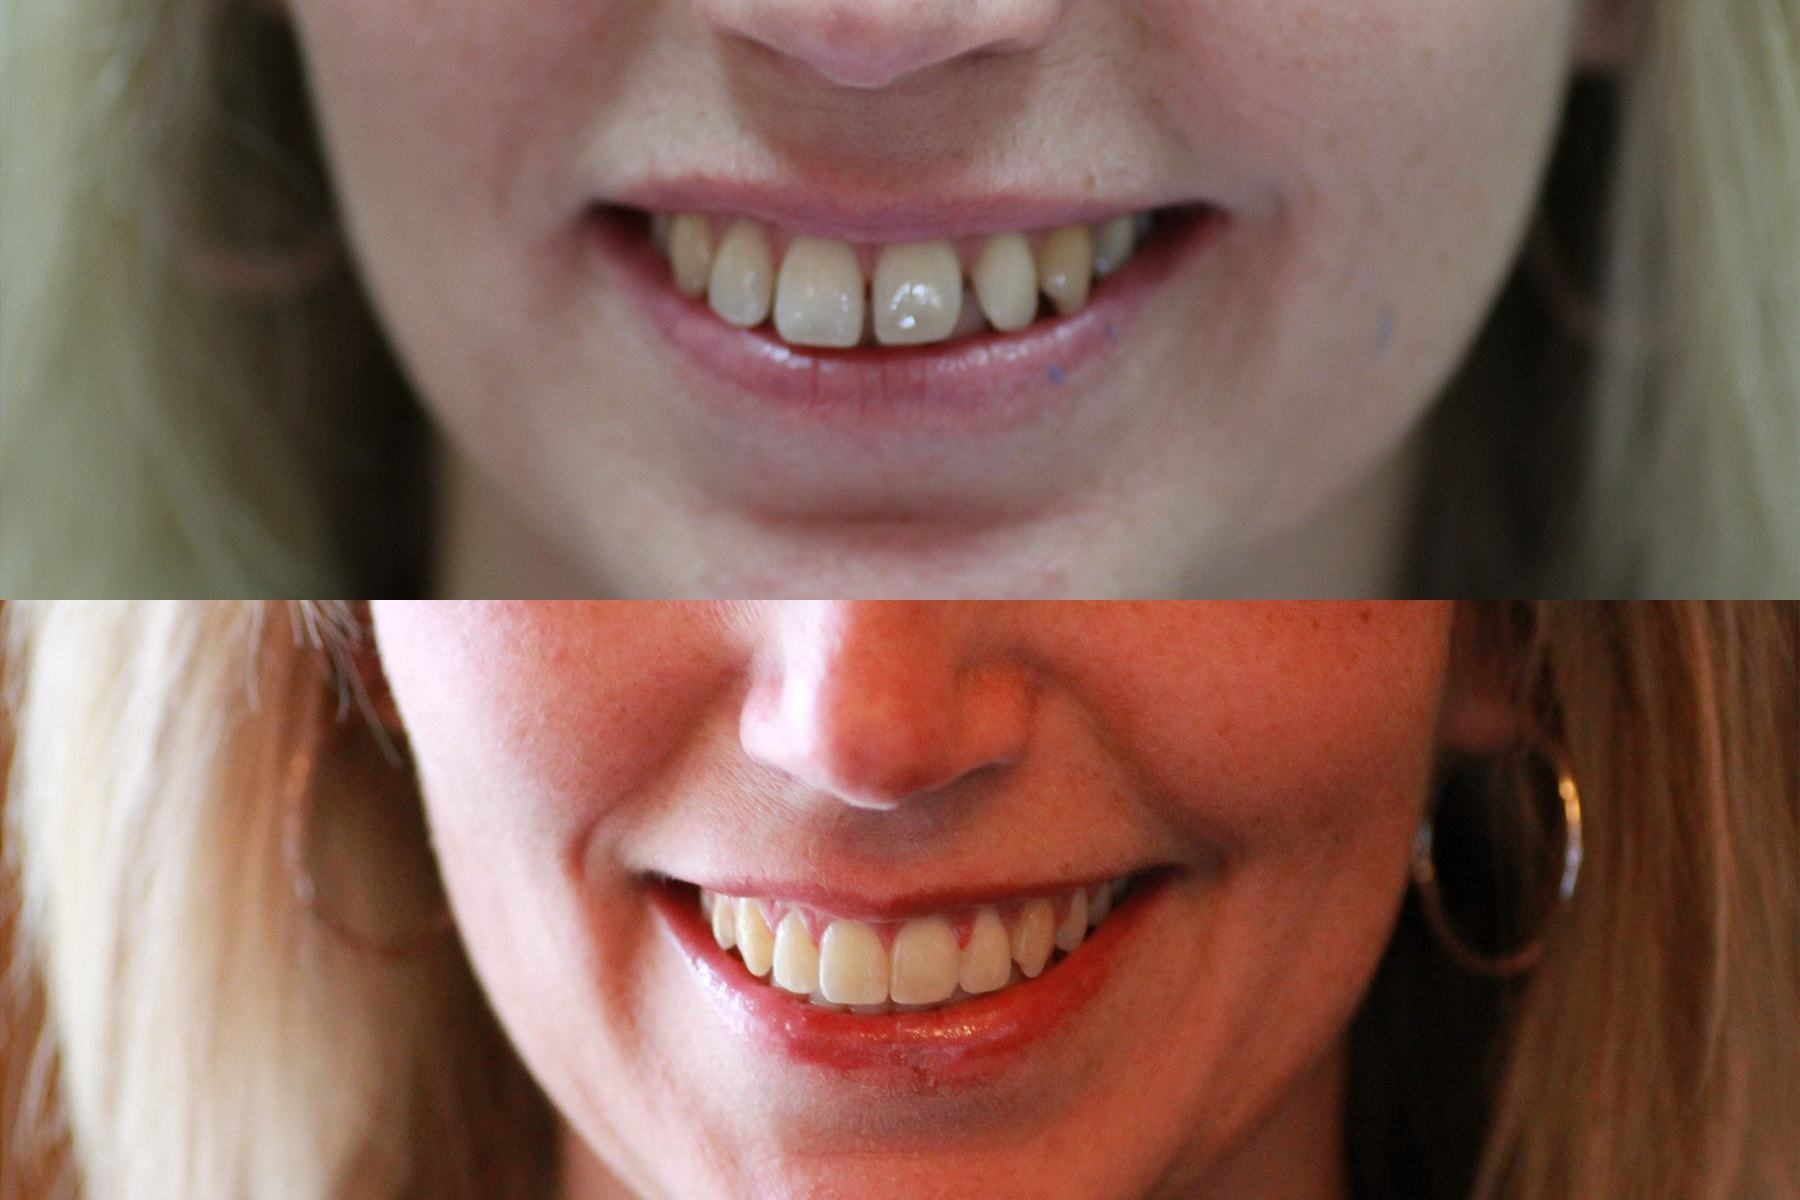 https://www.postfallsfamilydental.com/uploads/Teeth-Straightening-Julie-before-and-after.jpg